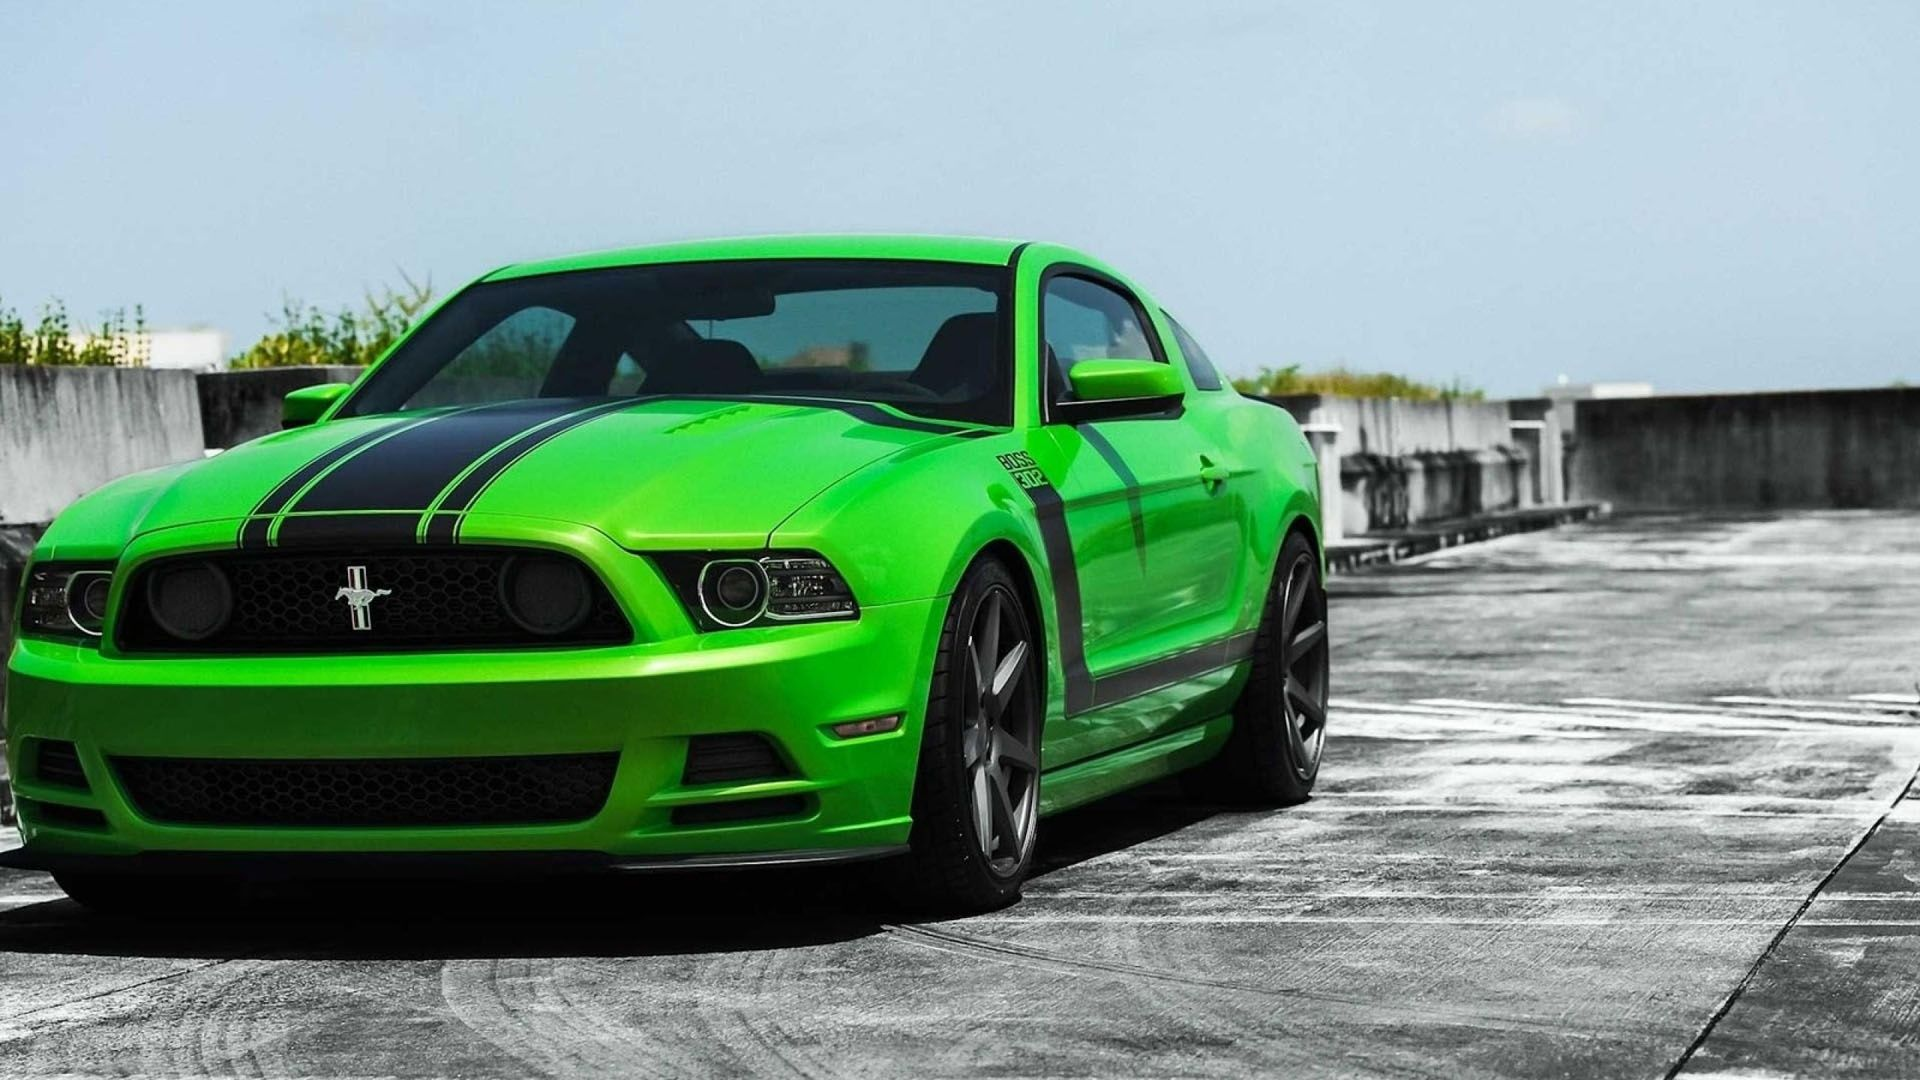 2012 Ford Mustang GT High Definition Wallpaper is hd